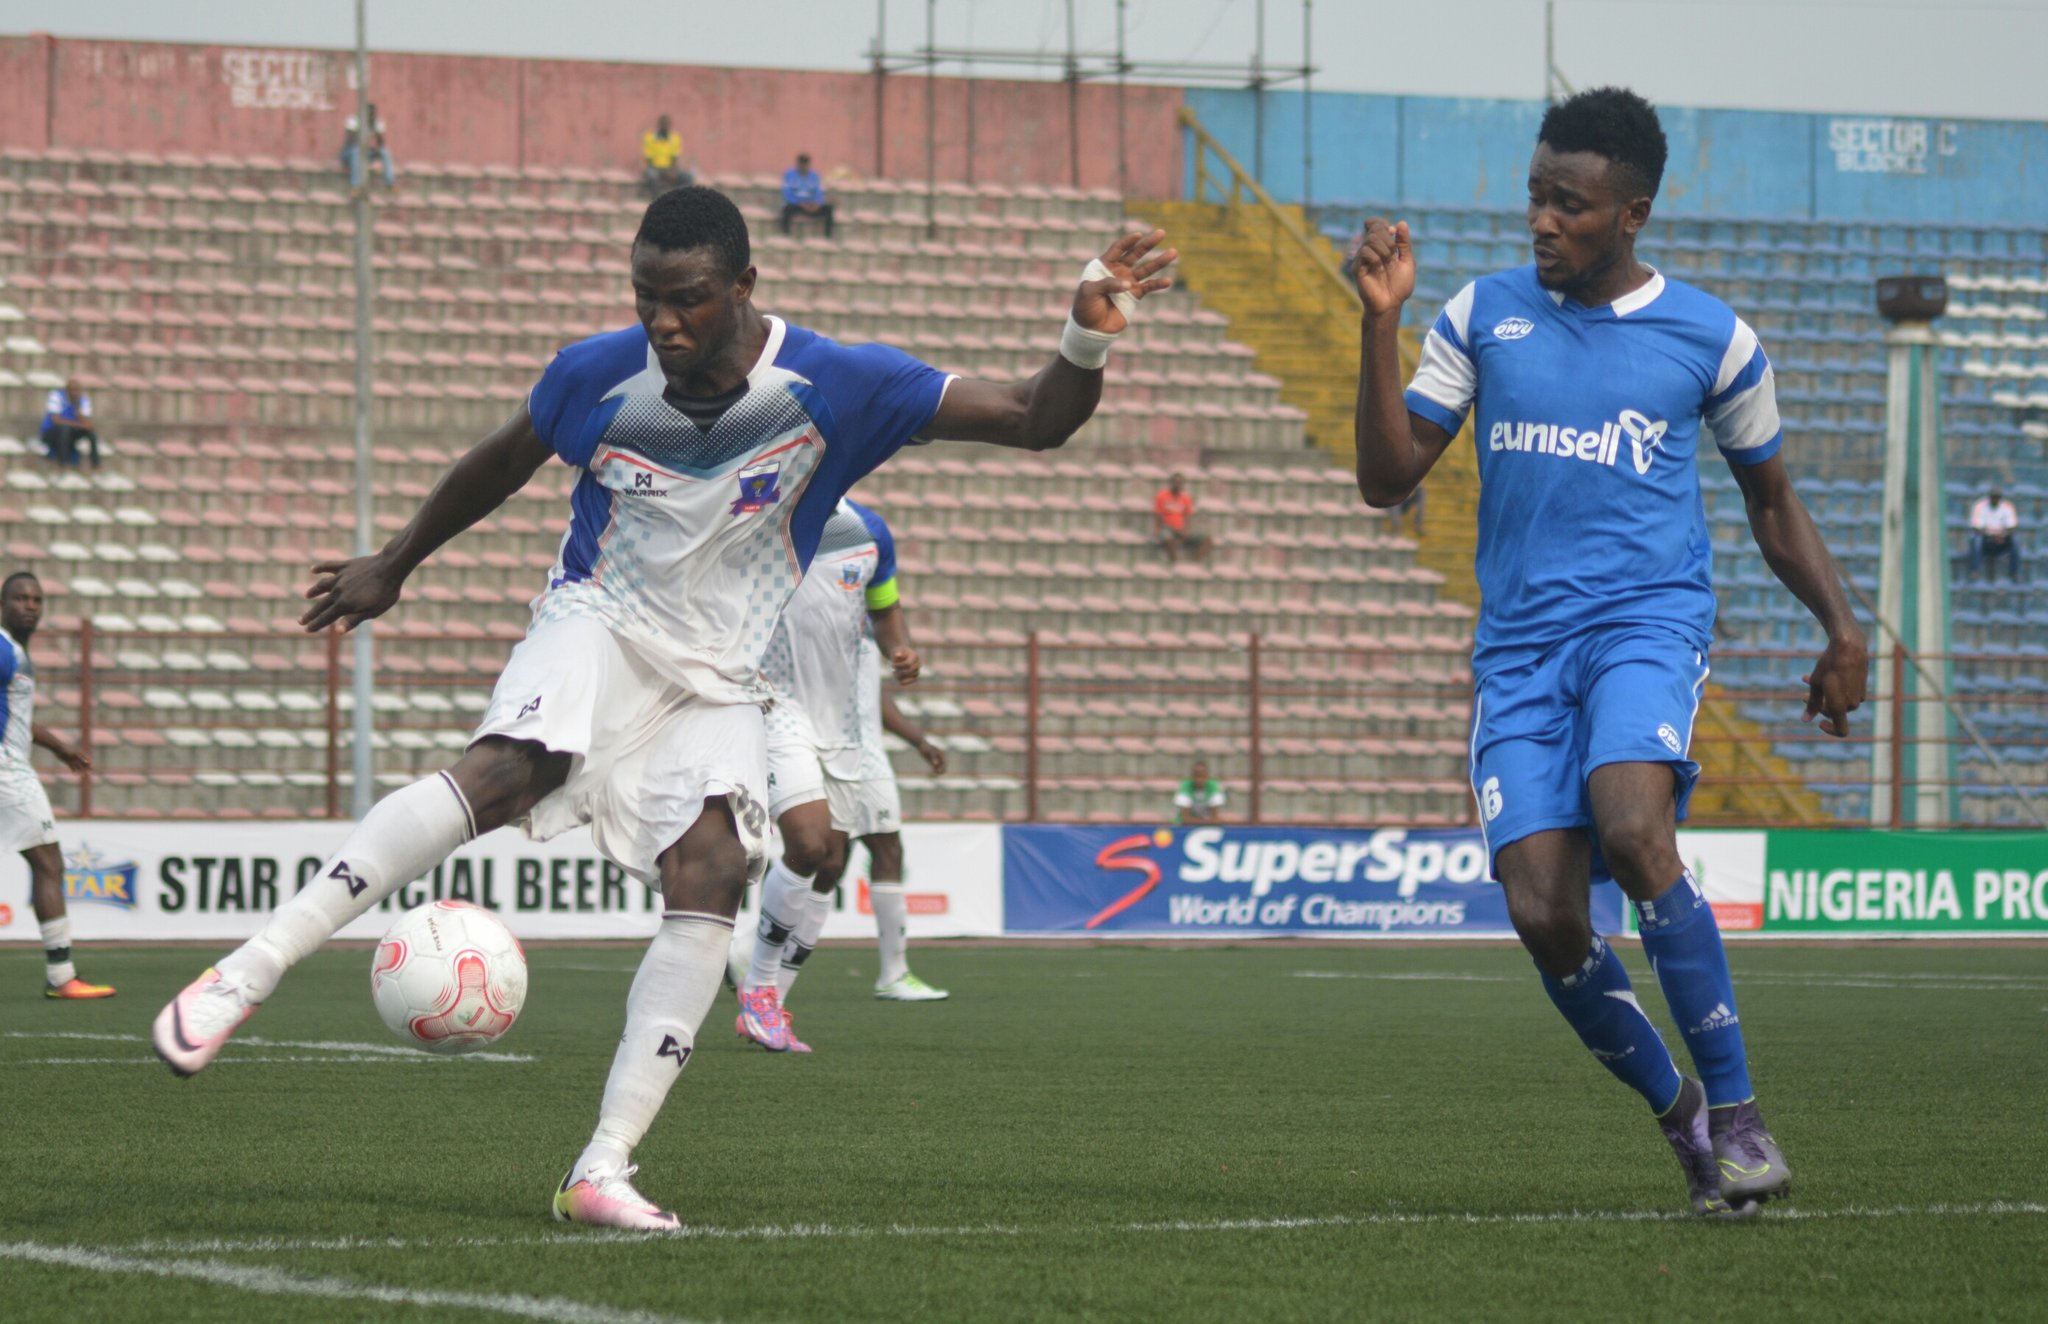 NPFL: Plateau United Stay Top, Tornadoes Hold Rangers; Pillars, 3SC Lose